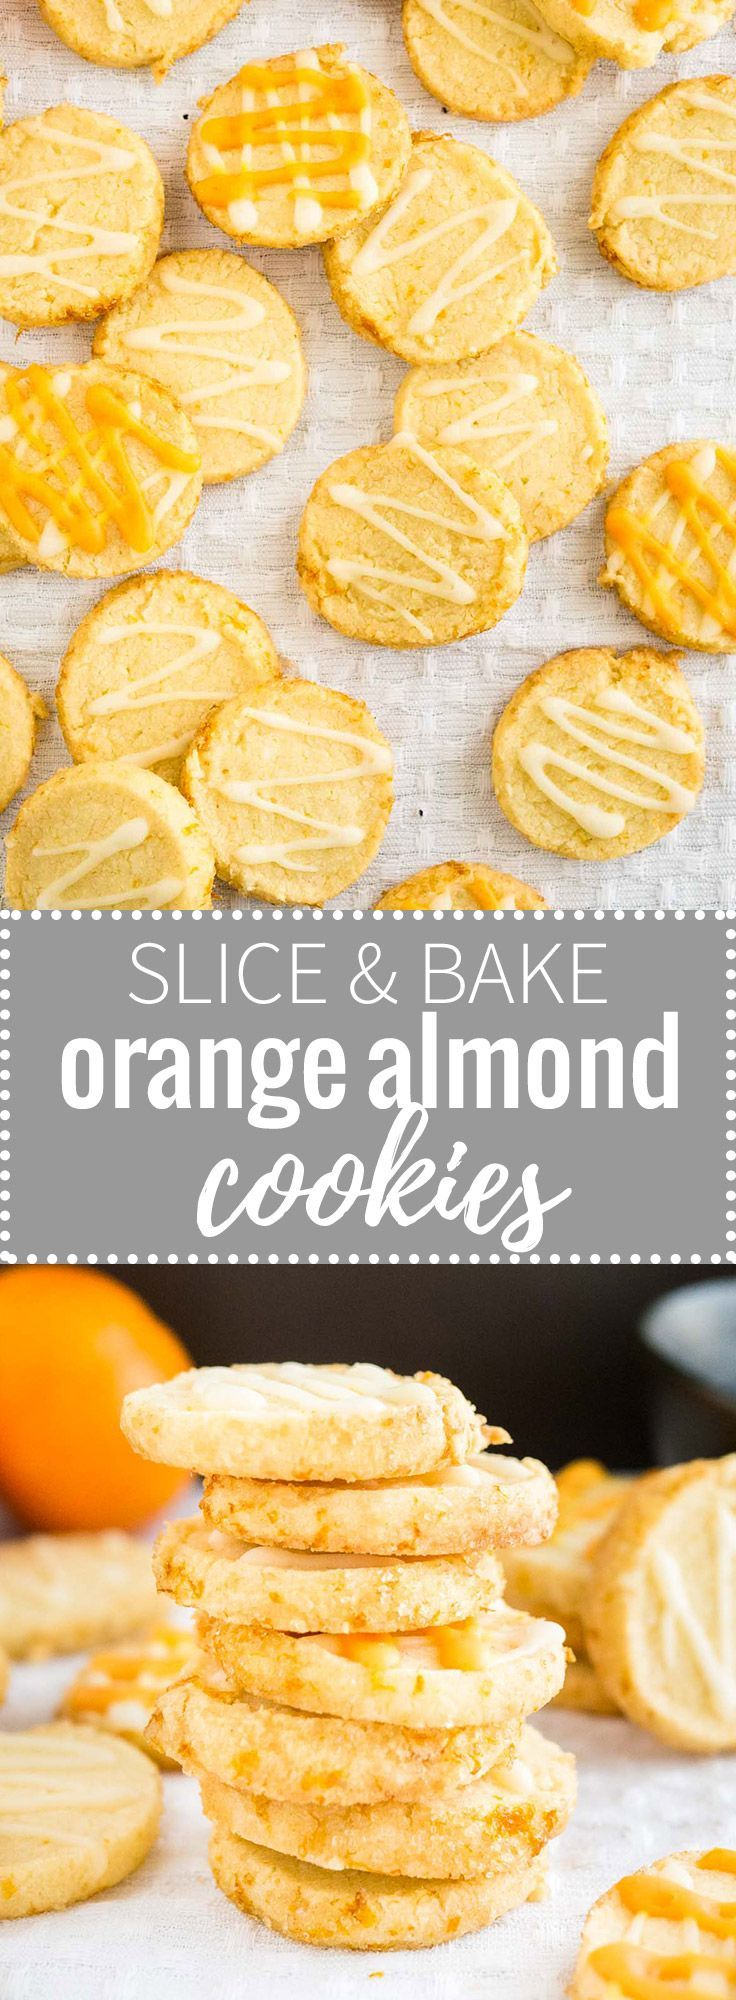 These easy Slice & Bake Orange Almond Cookies are soft in the center and crunchy on the edges!